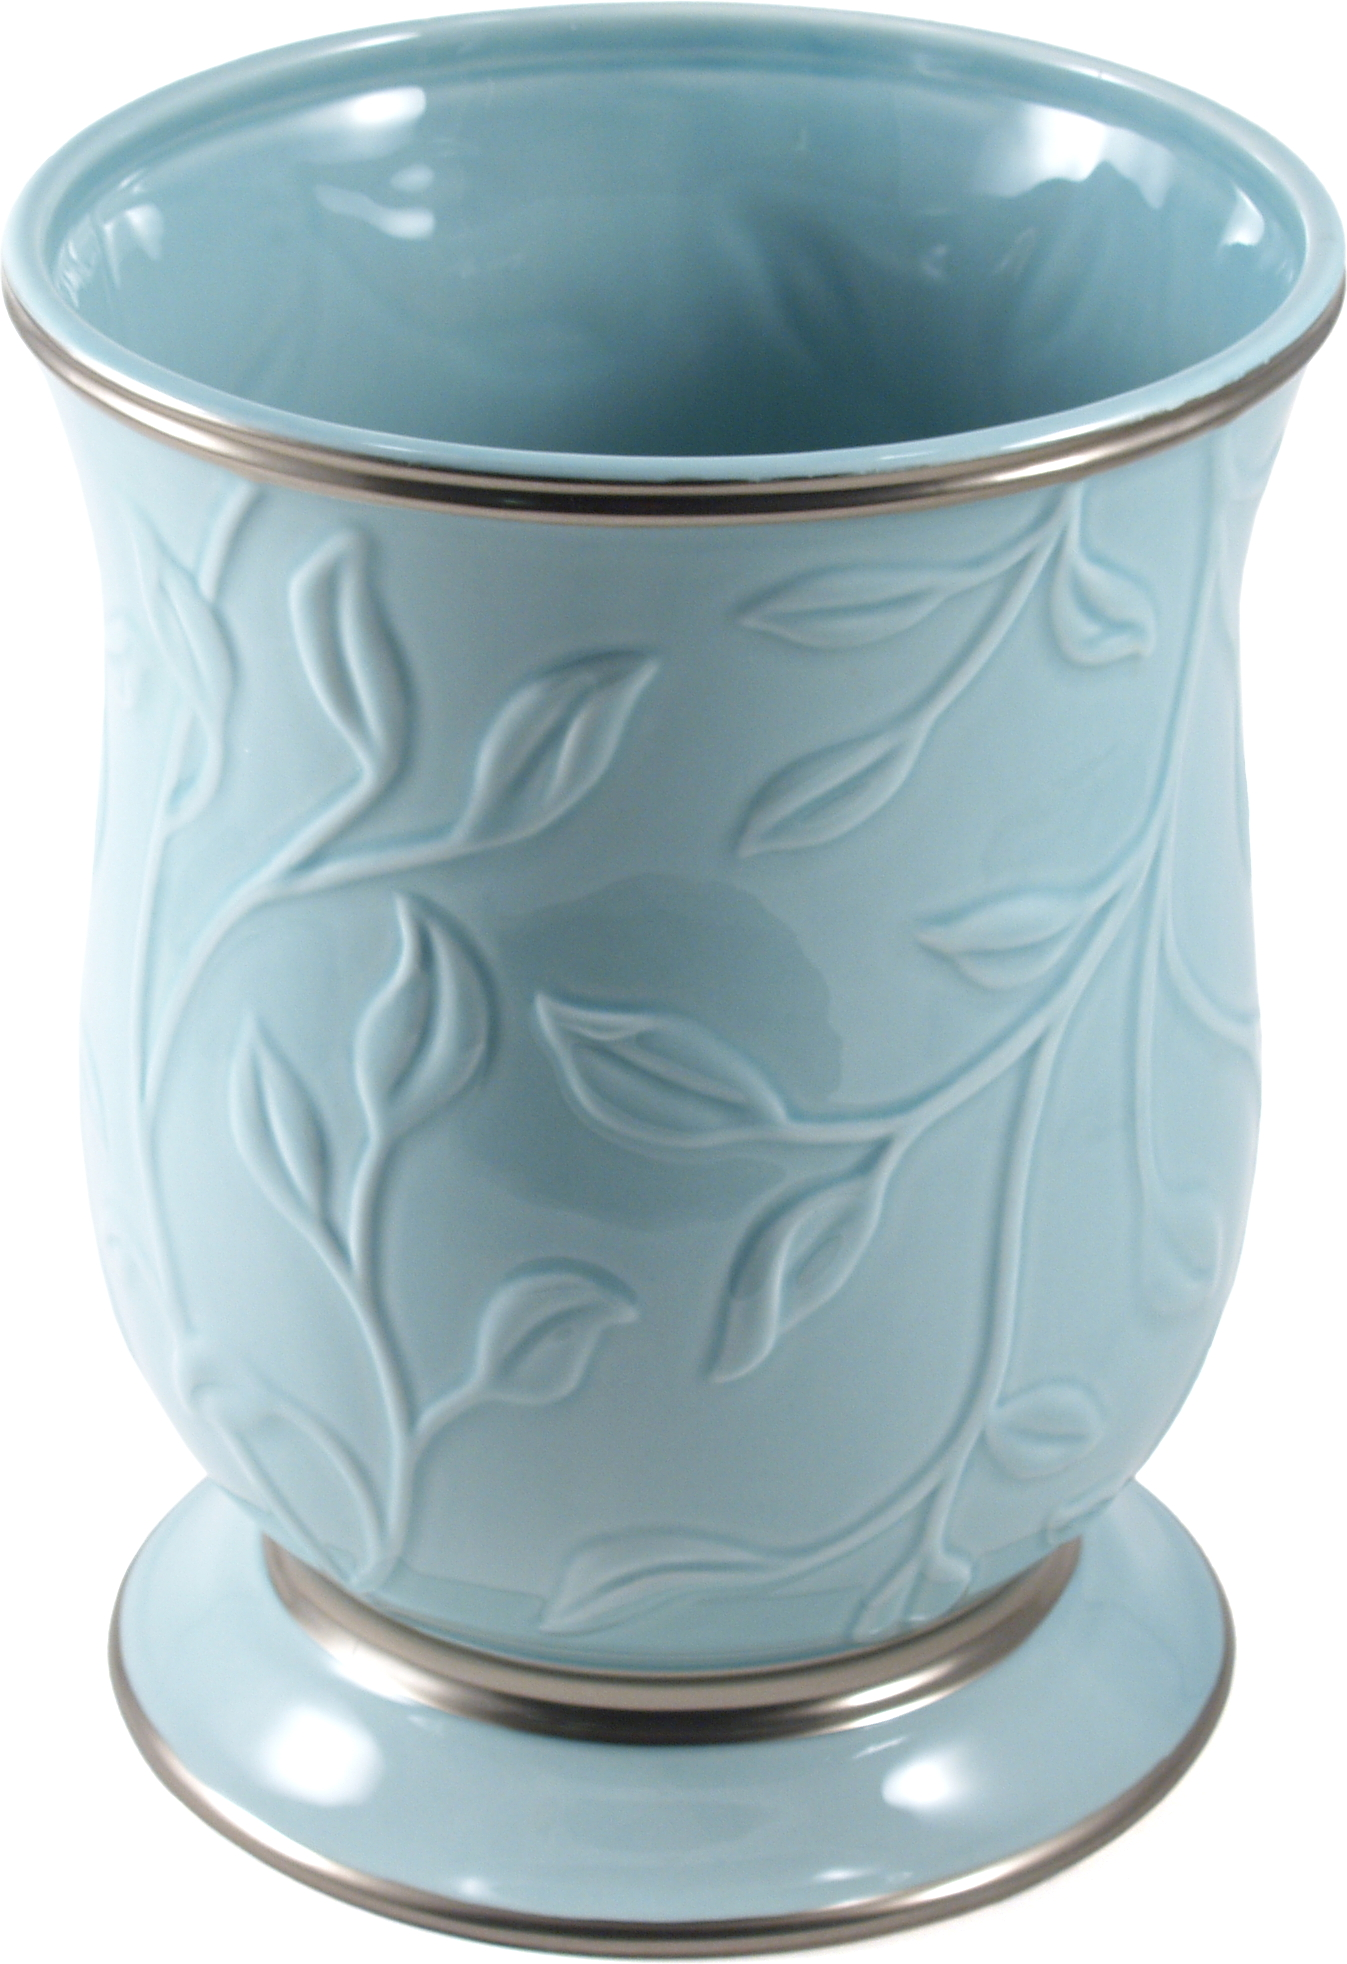 Saturday Knight LTD Seafoam Blue Ceramic Waste Bin